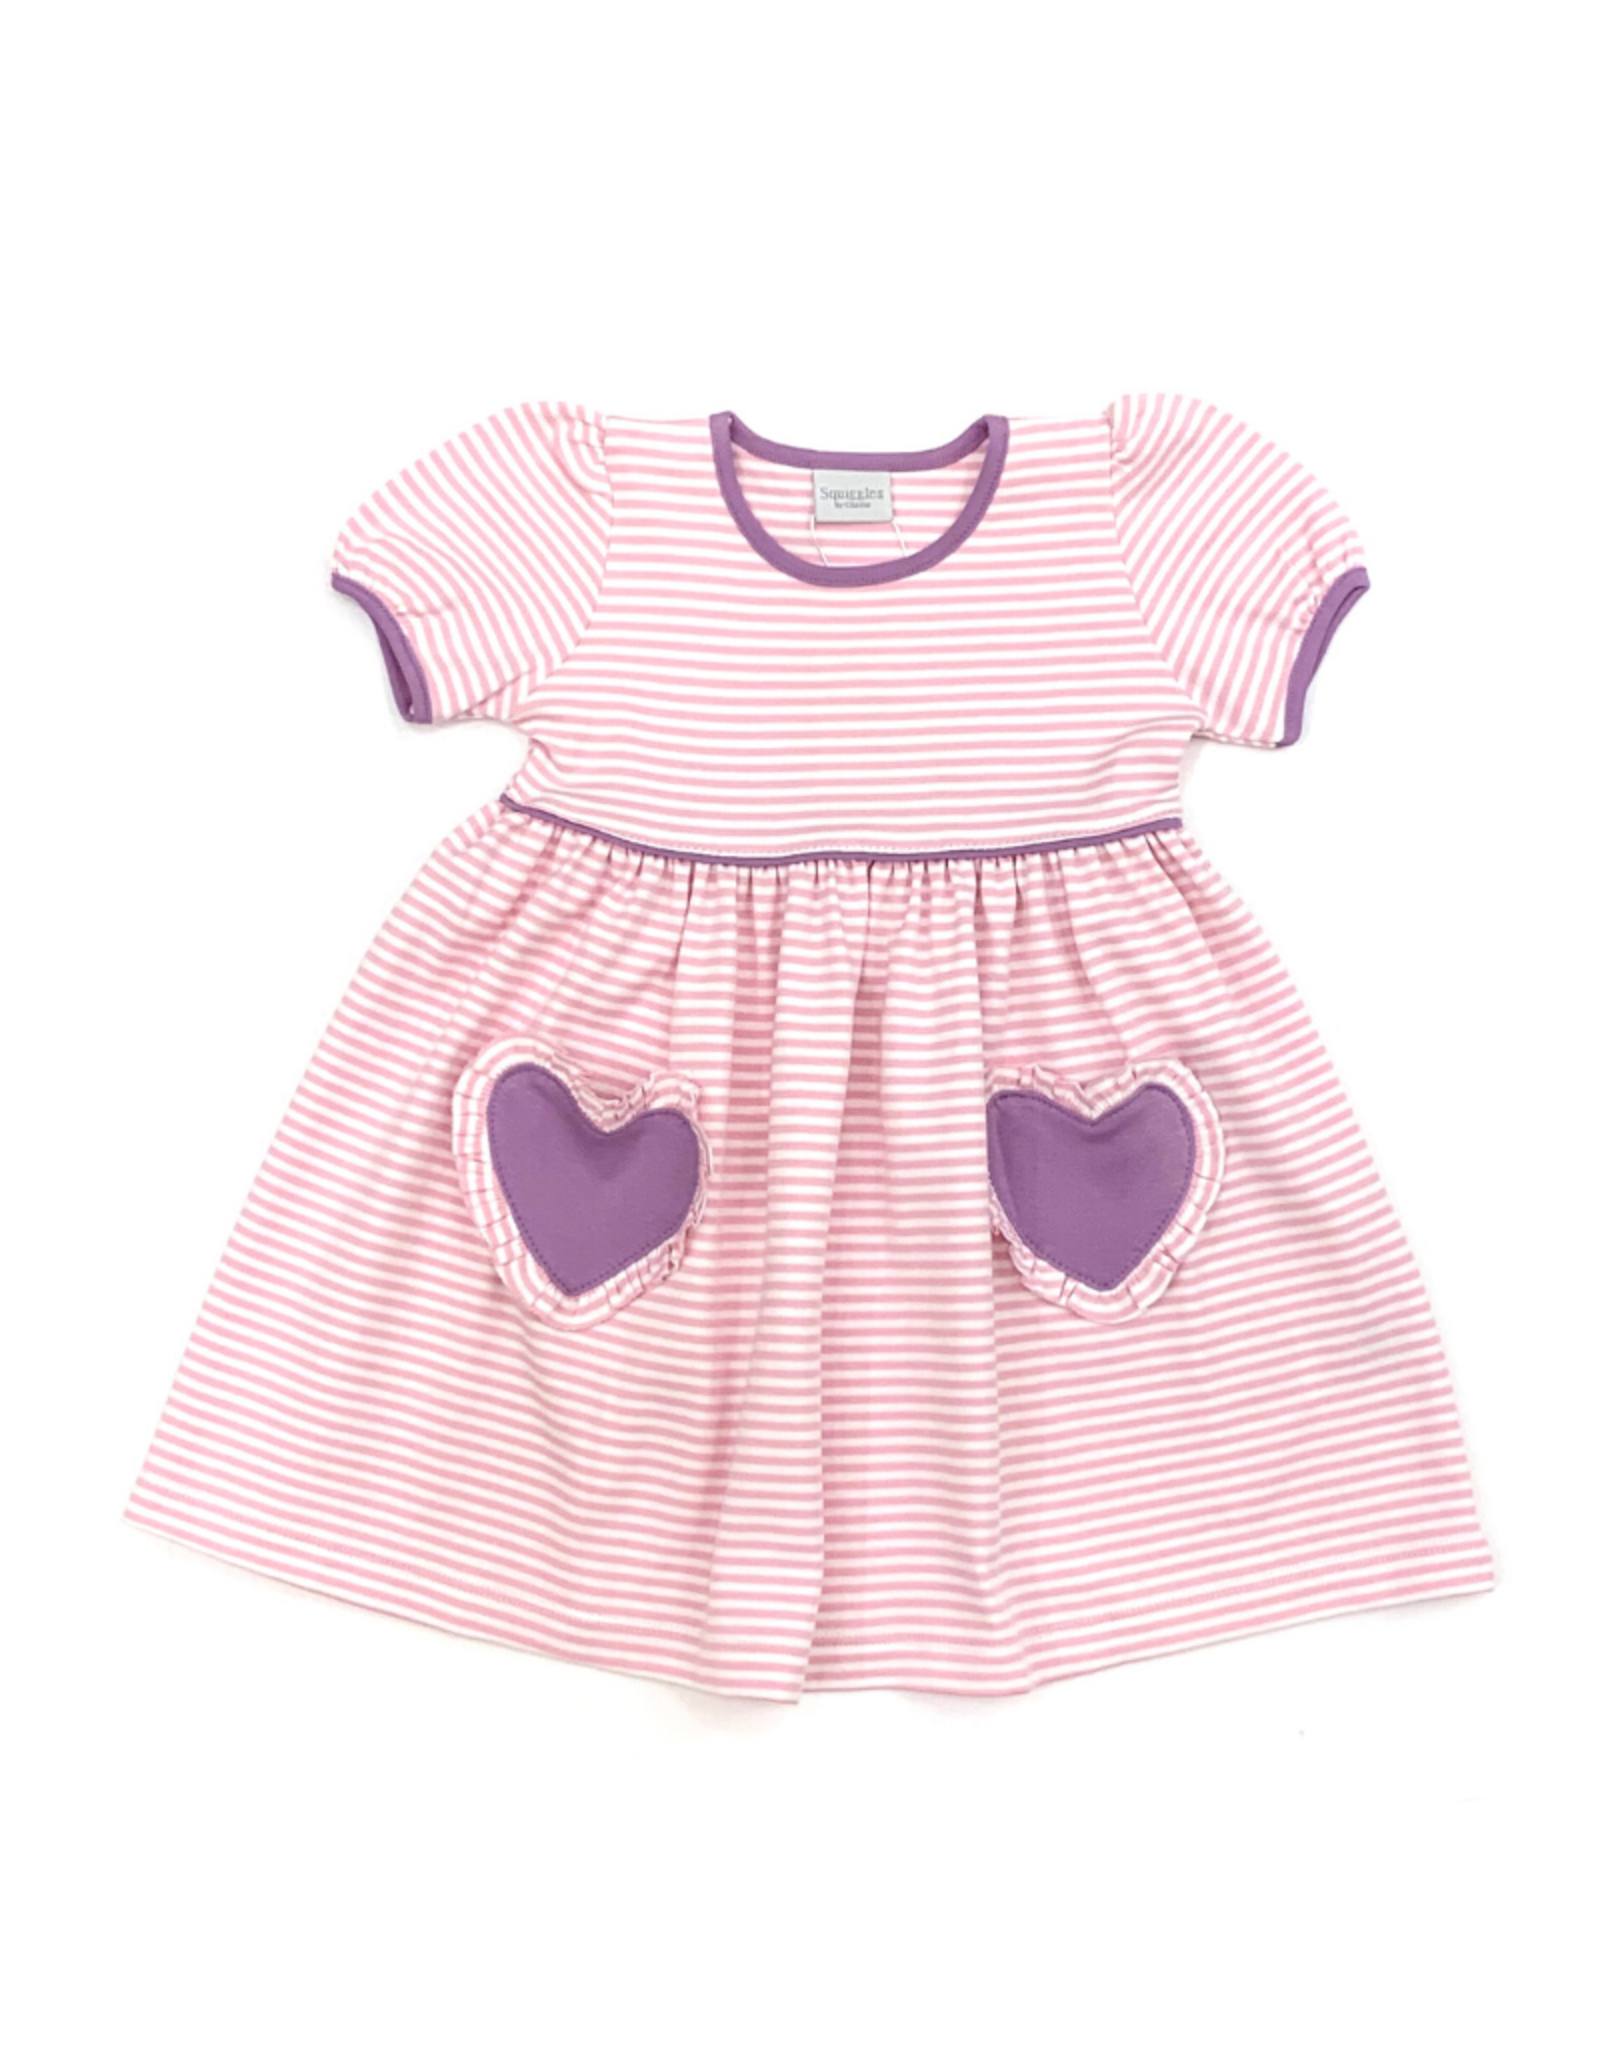 Squiggles Pink Striped Dress With Purple Heart Pockets